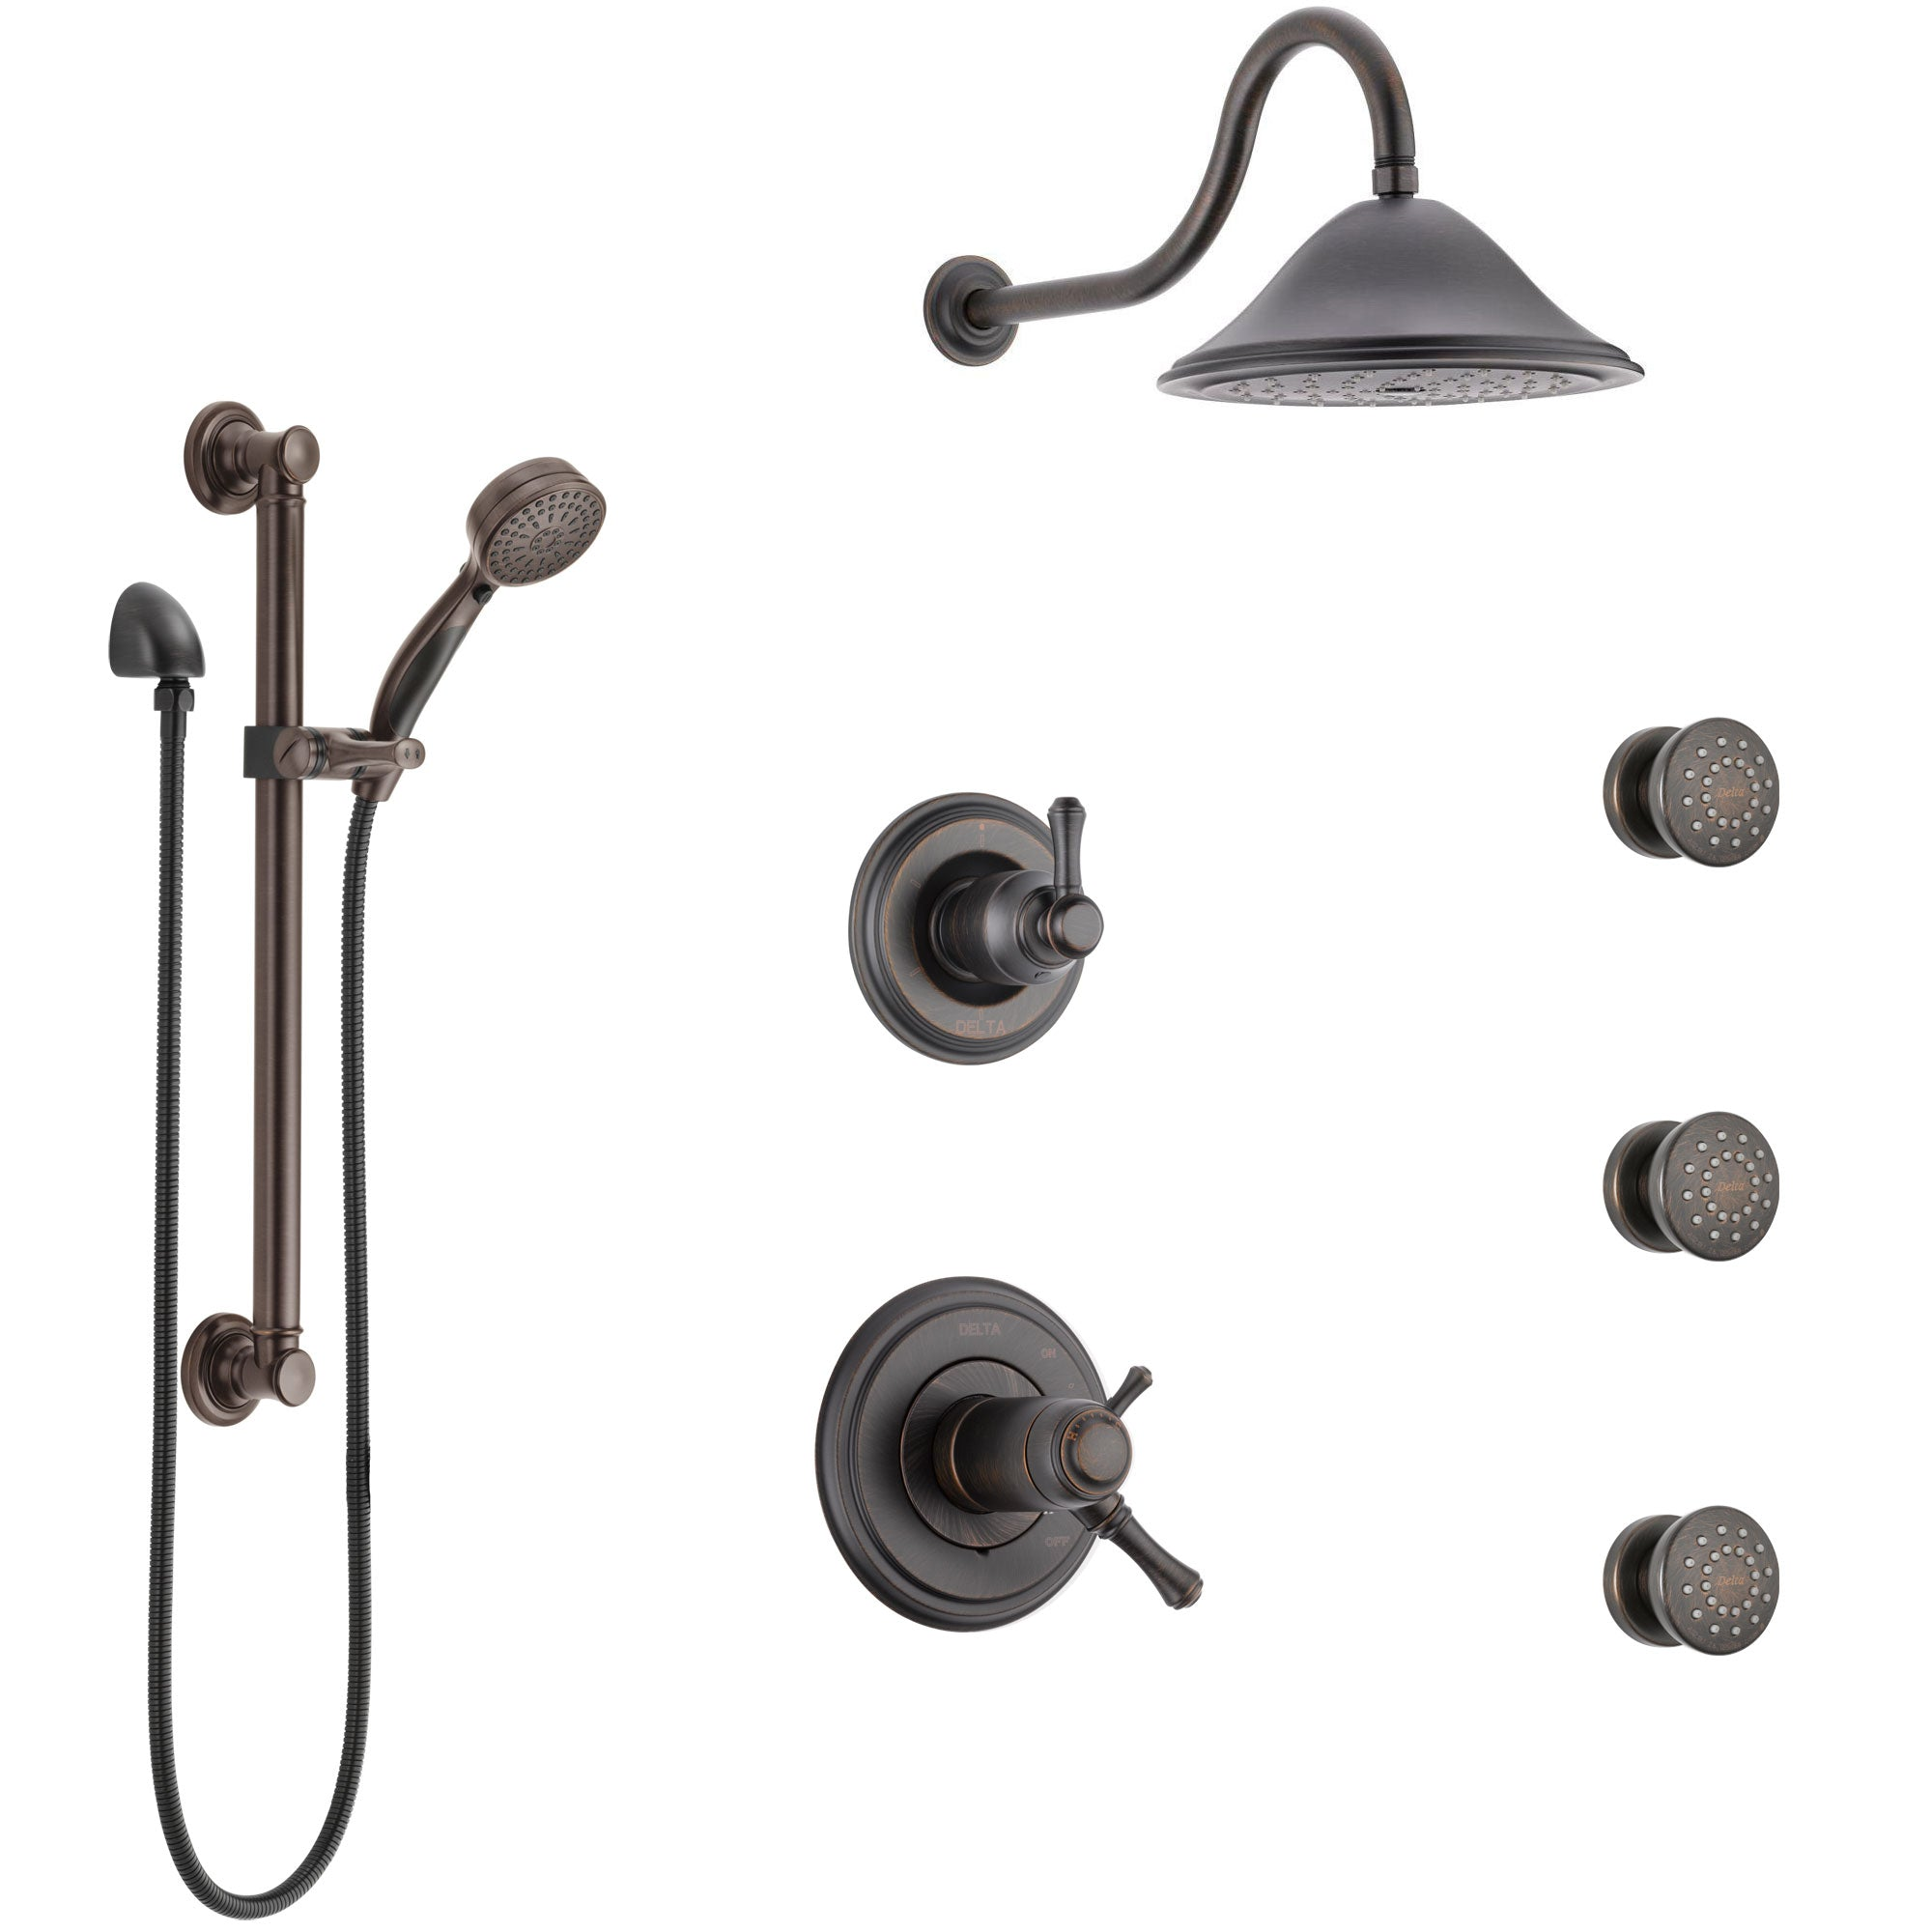 Delta Cassidy Venetian Bronze Shower System with Dual Thermostatic Control, Diverter, Showerhead, 3 Body Sprays, and Grab Bar Hand Shower SS17T971RB1